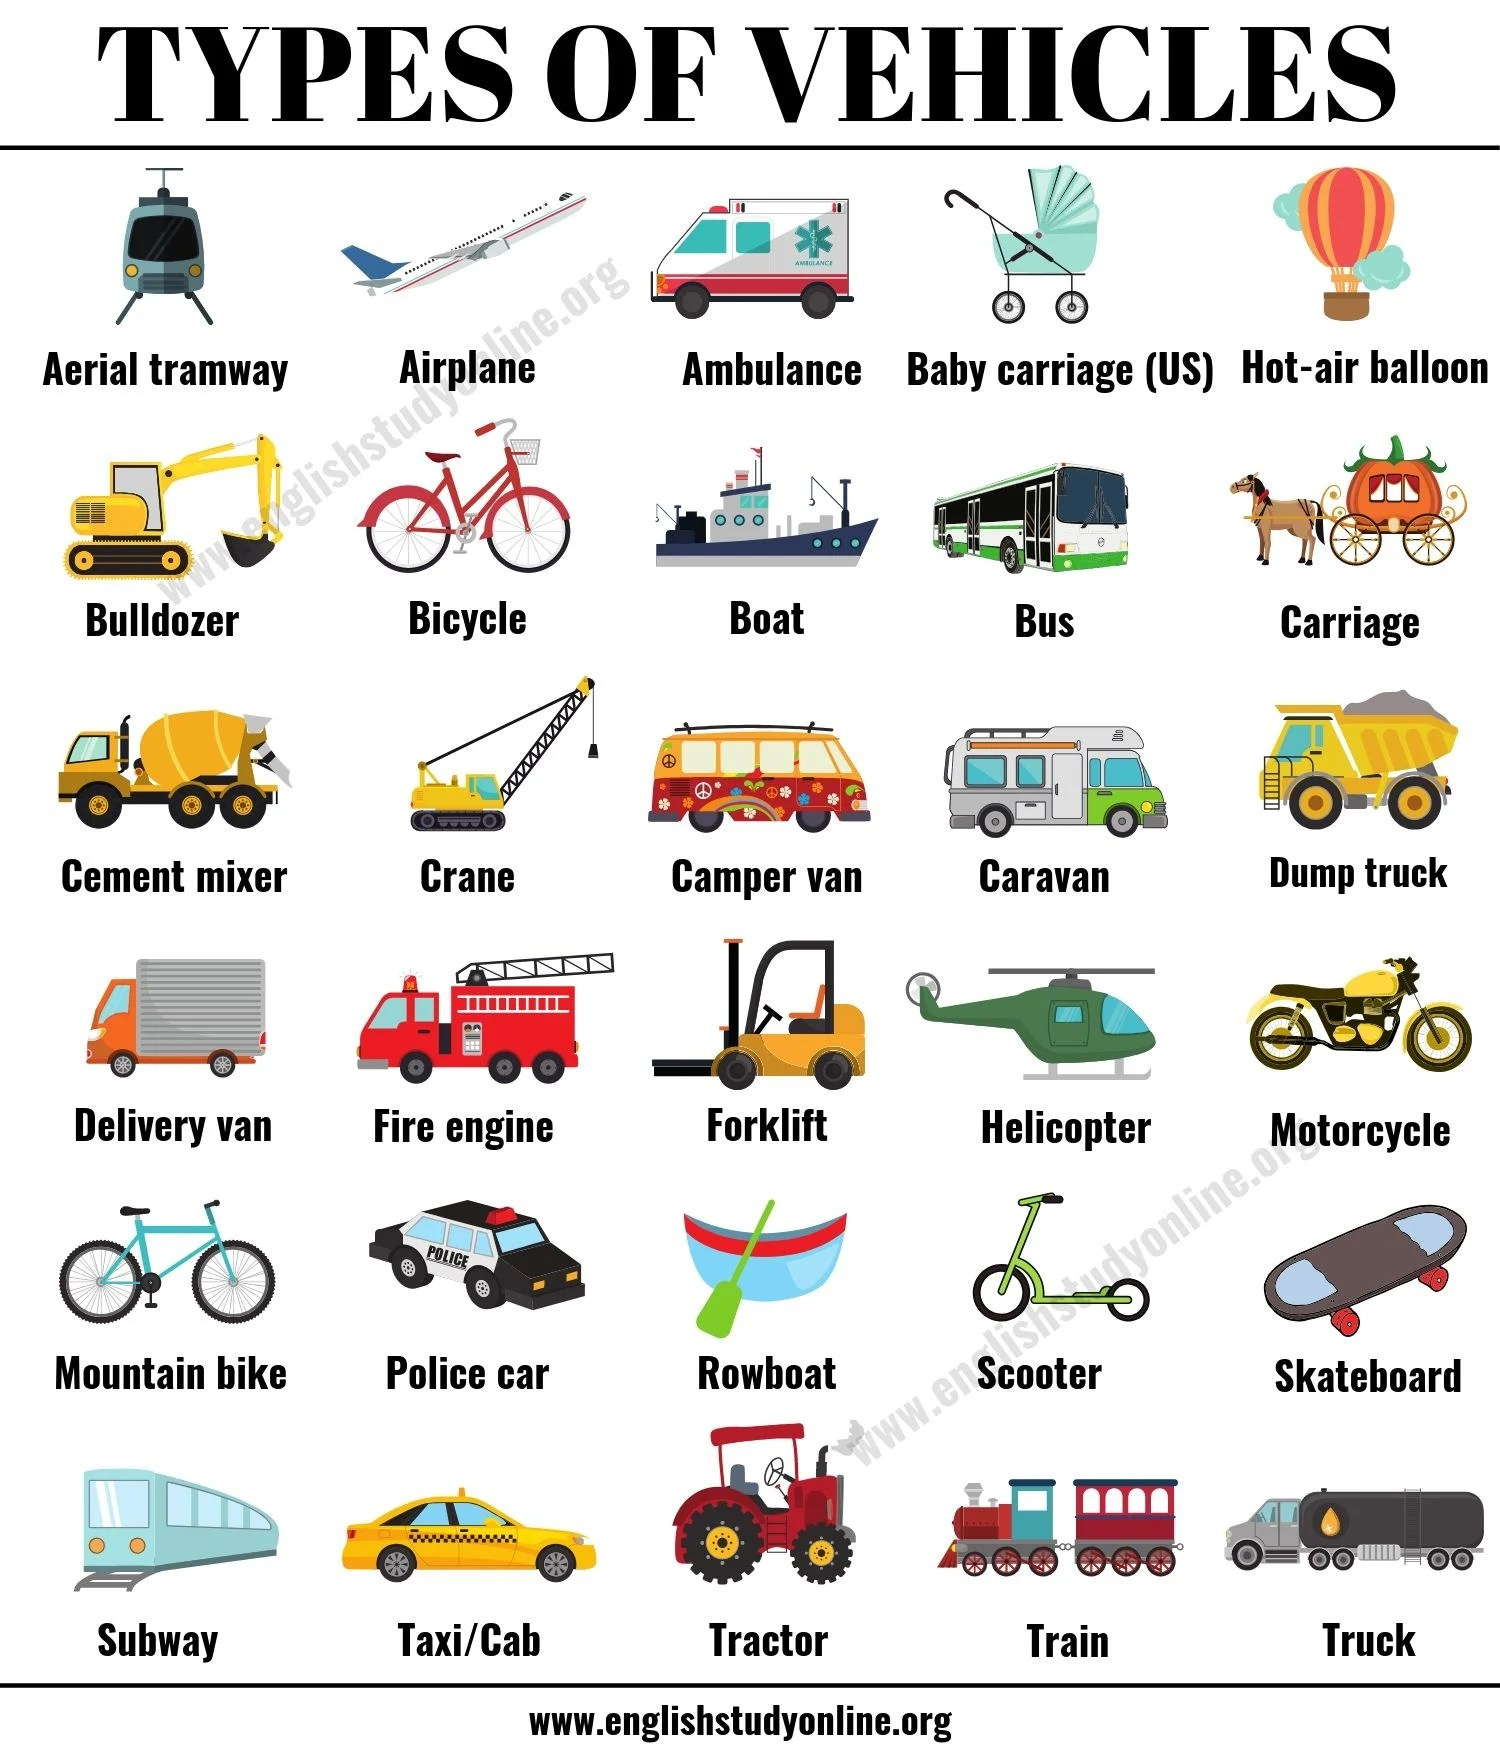 Types Of Vehicles List 30 Vehicle Names With Examples And Esl Images English Study Online